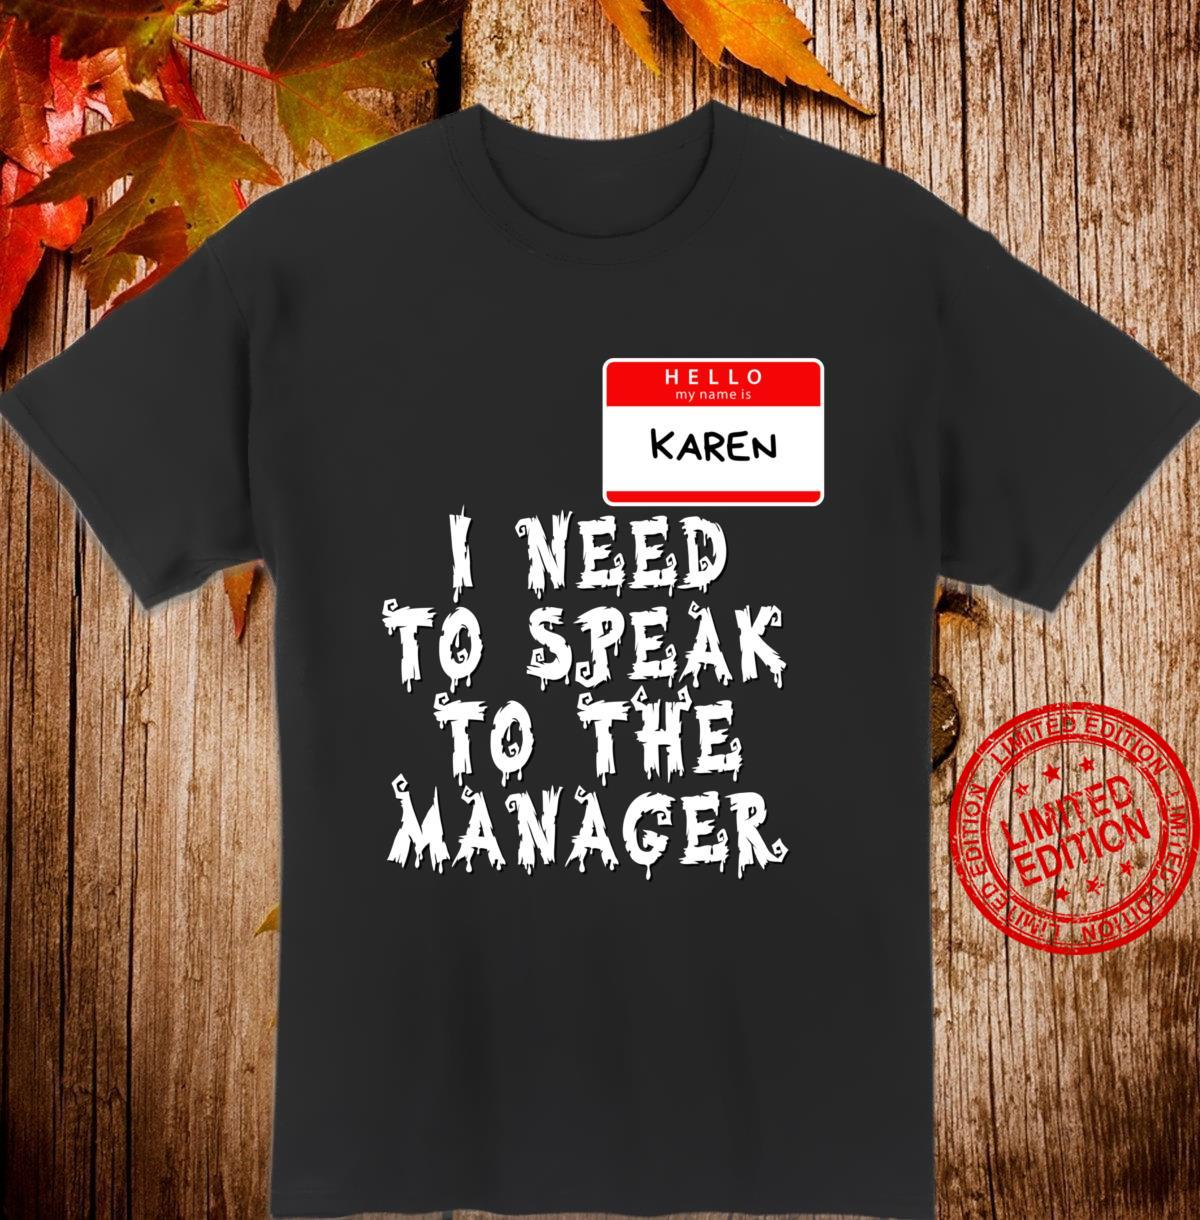 My name is Karen. Need to Speak to Manager Halloween Costume Shirt